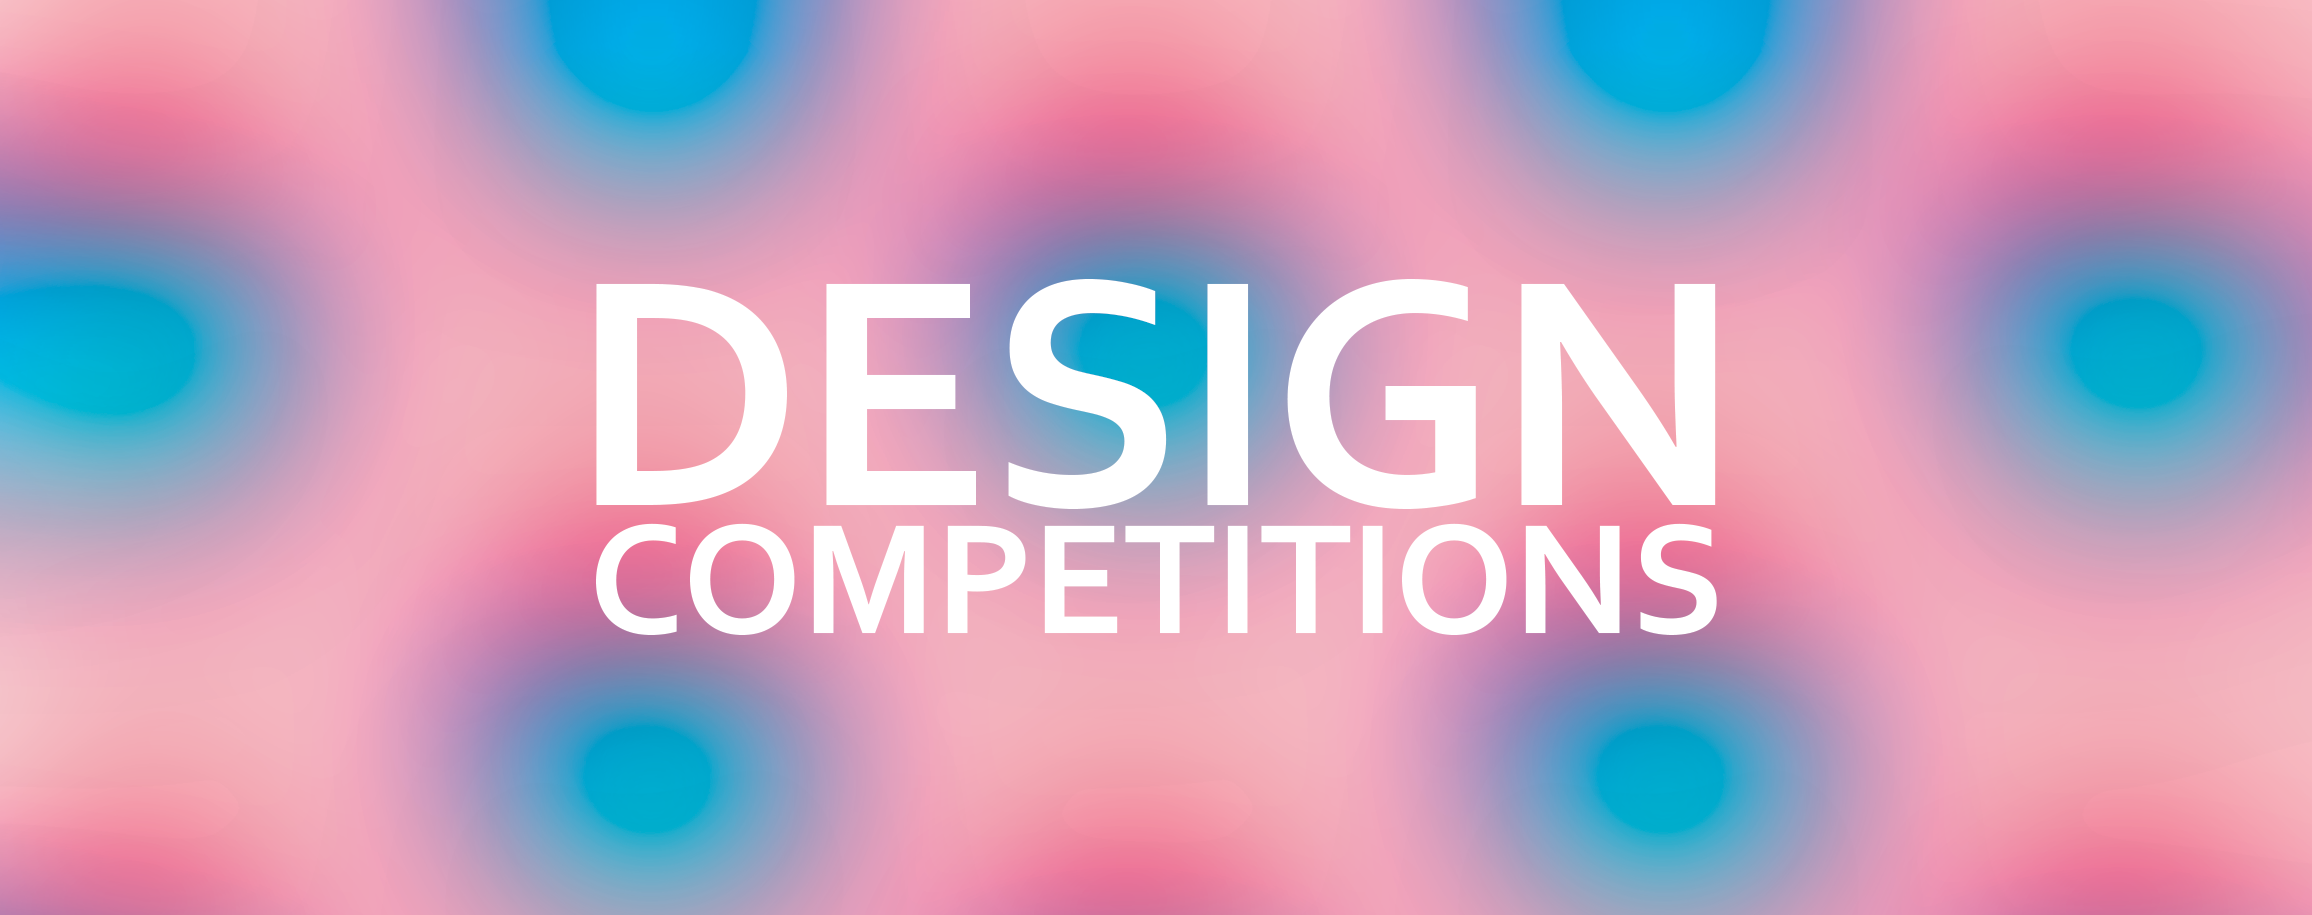 Design Competitions around the world